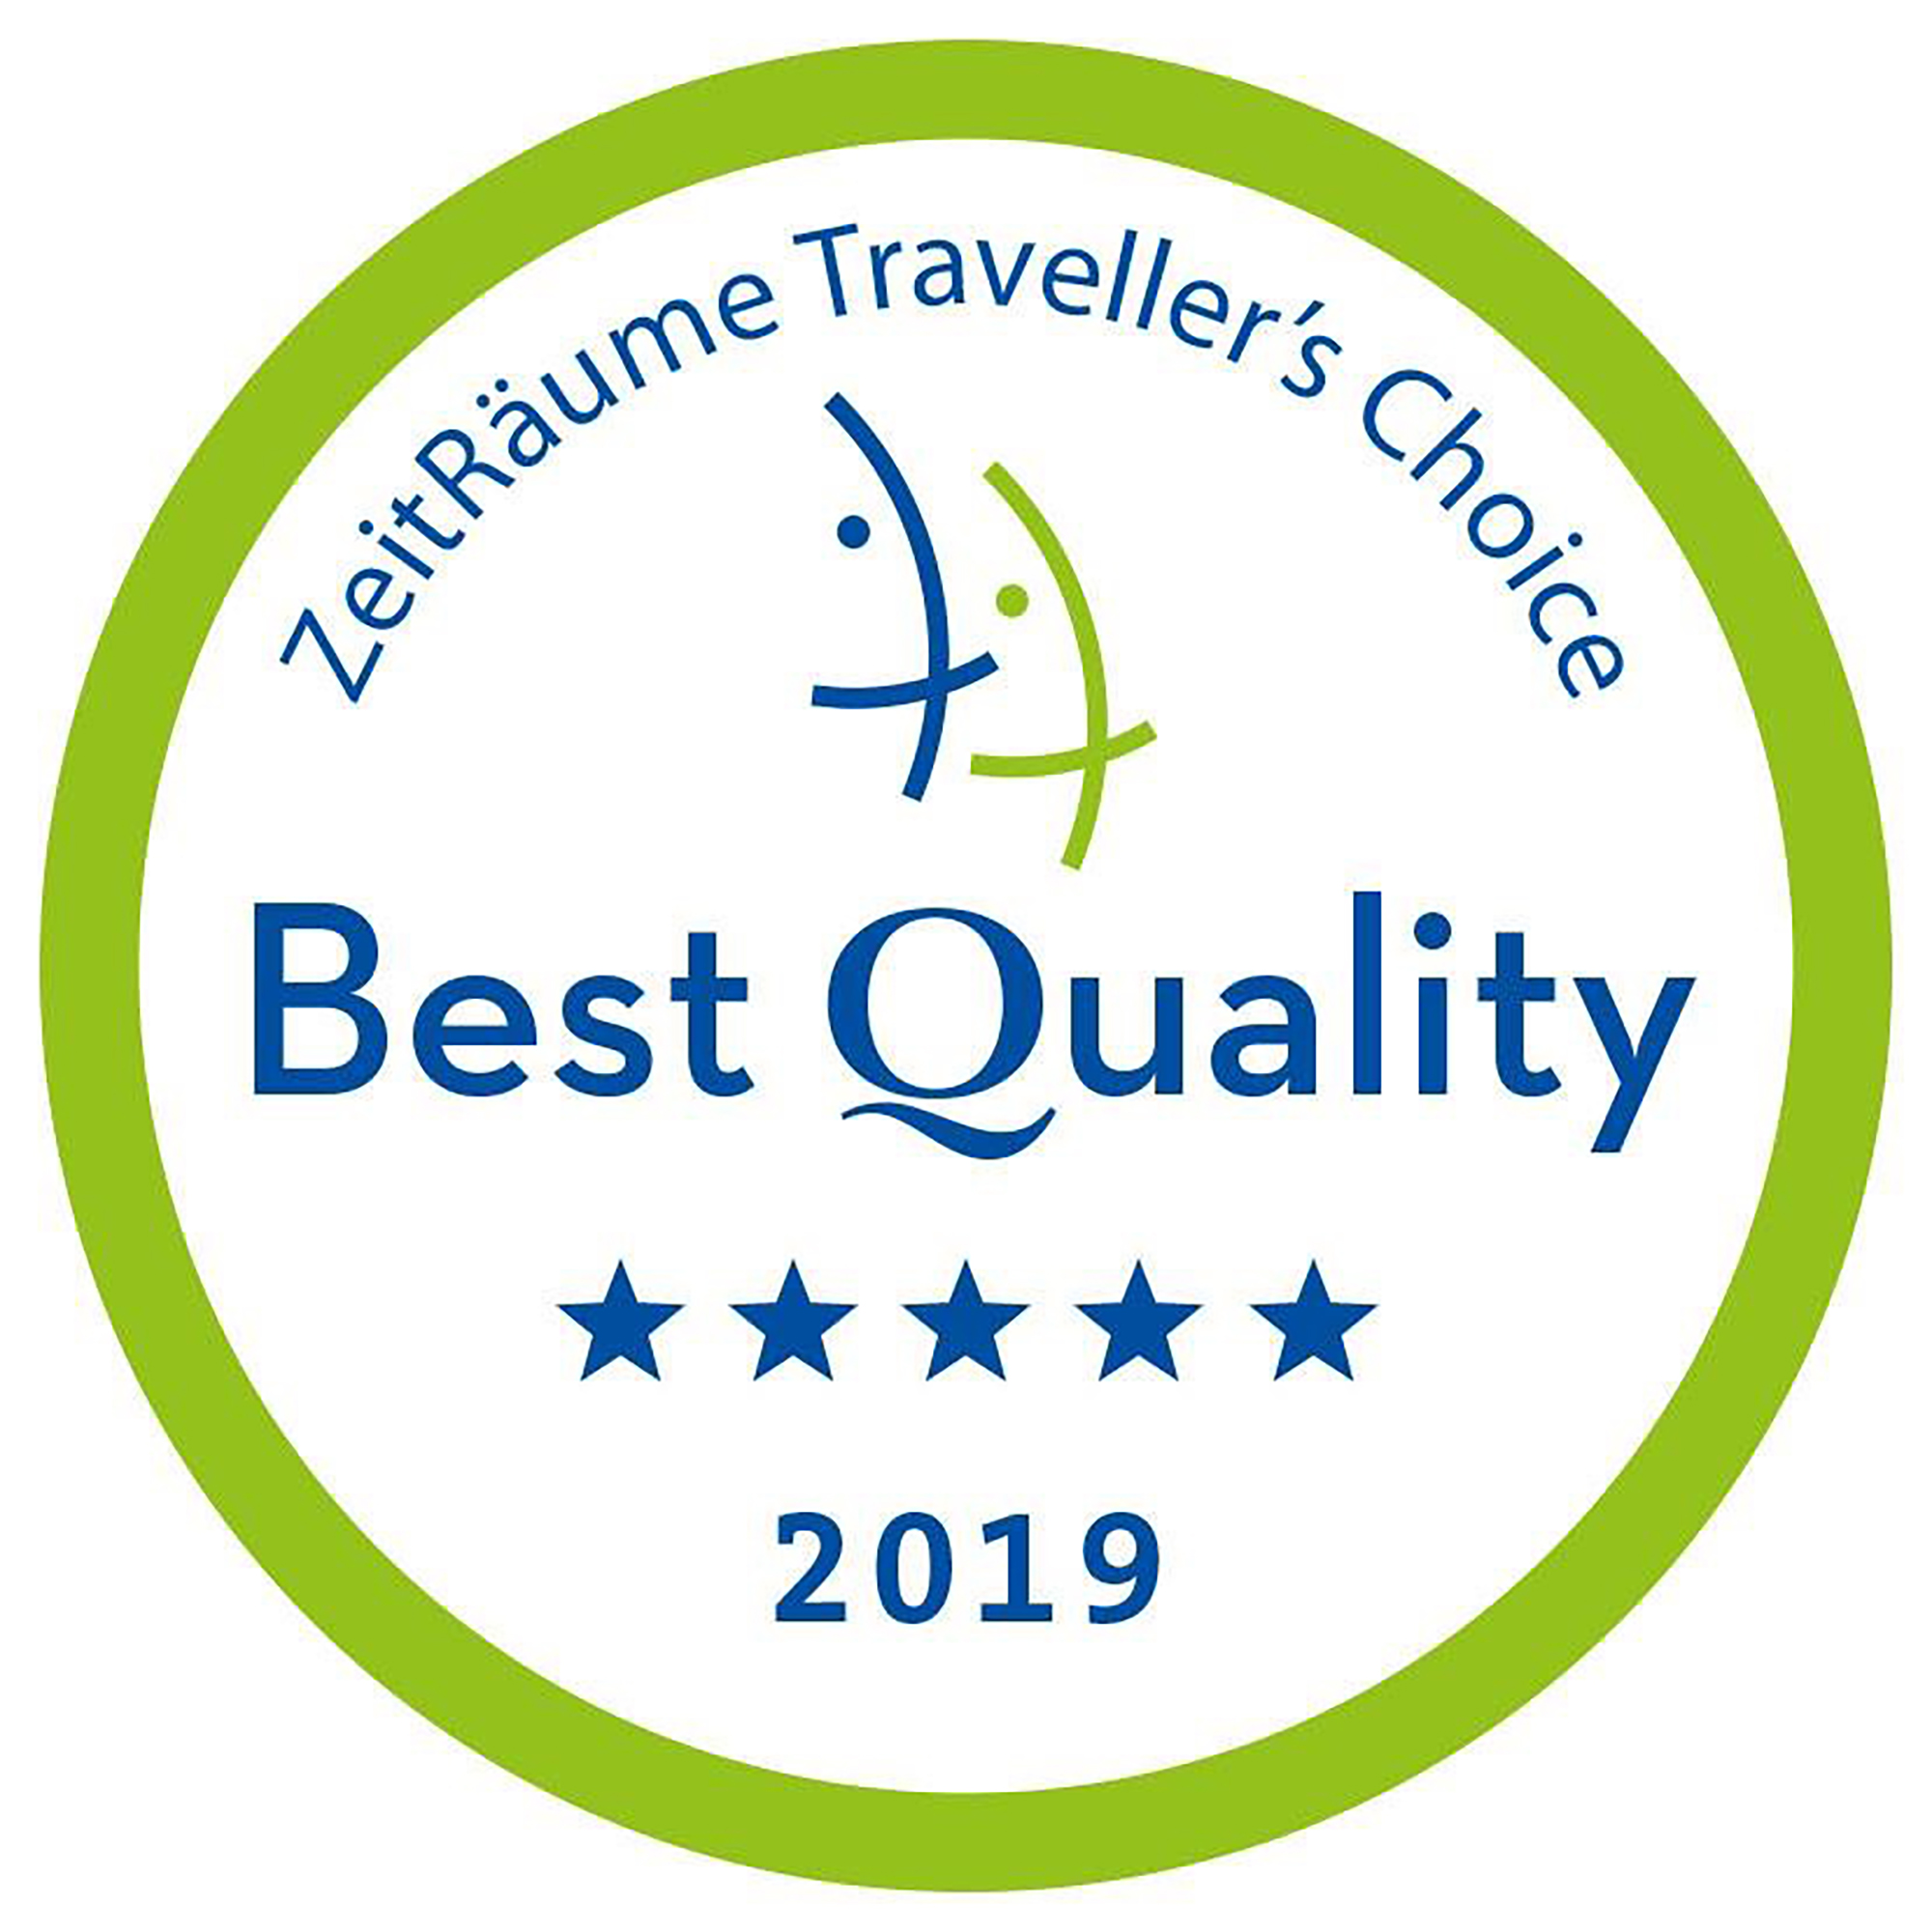 Zeitraume Travellers Choice Award 2019